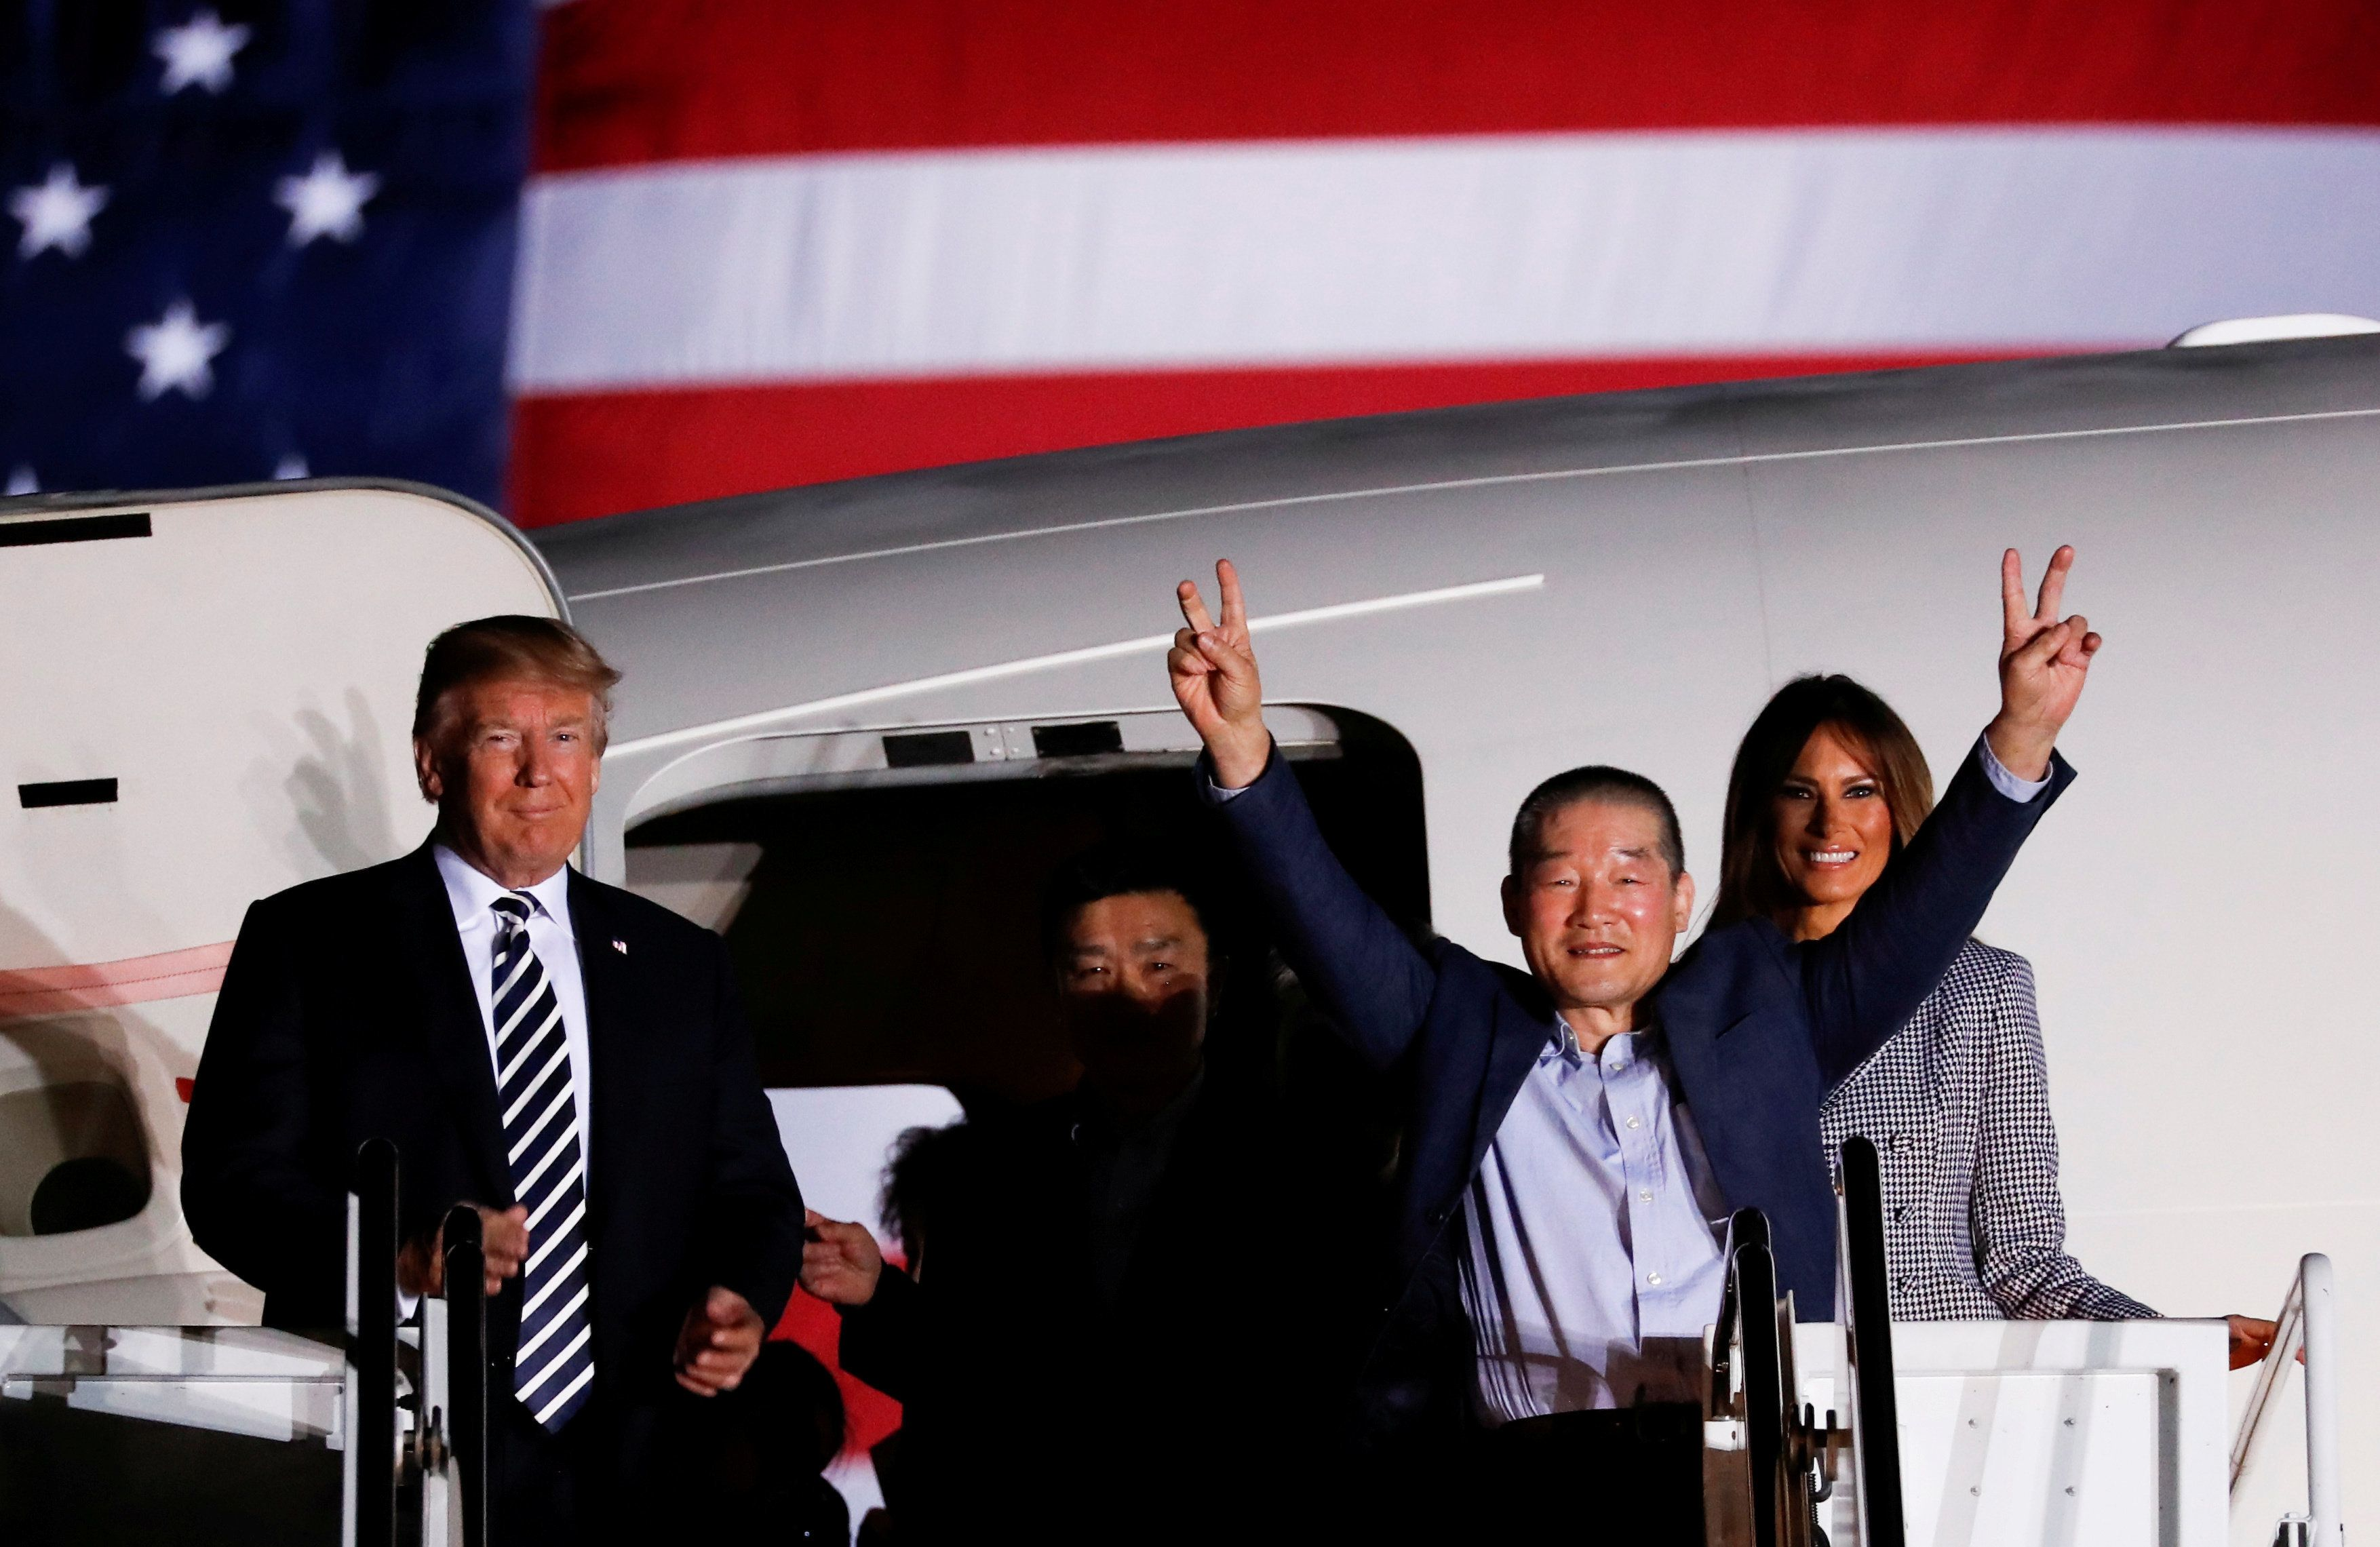 One of the Americans formerly held hostage in North Korea gestures next to U.S.President Donald Trump and first lady Melania Trump, upon their arrival at Joint Base Andrews, Maryland, U.S., May 10, 2018.  REUTERS/Jonathan Ernst